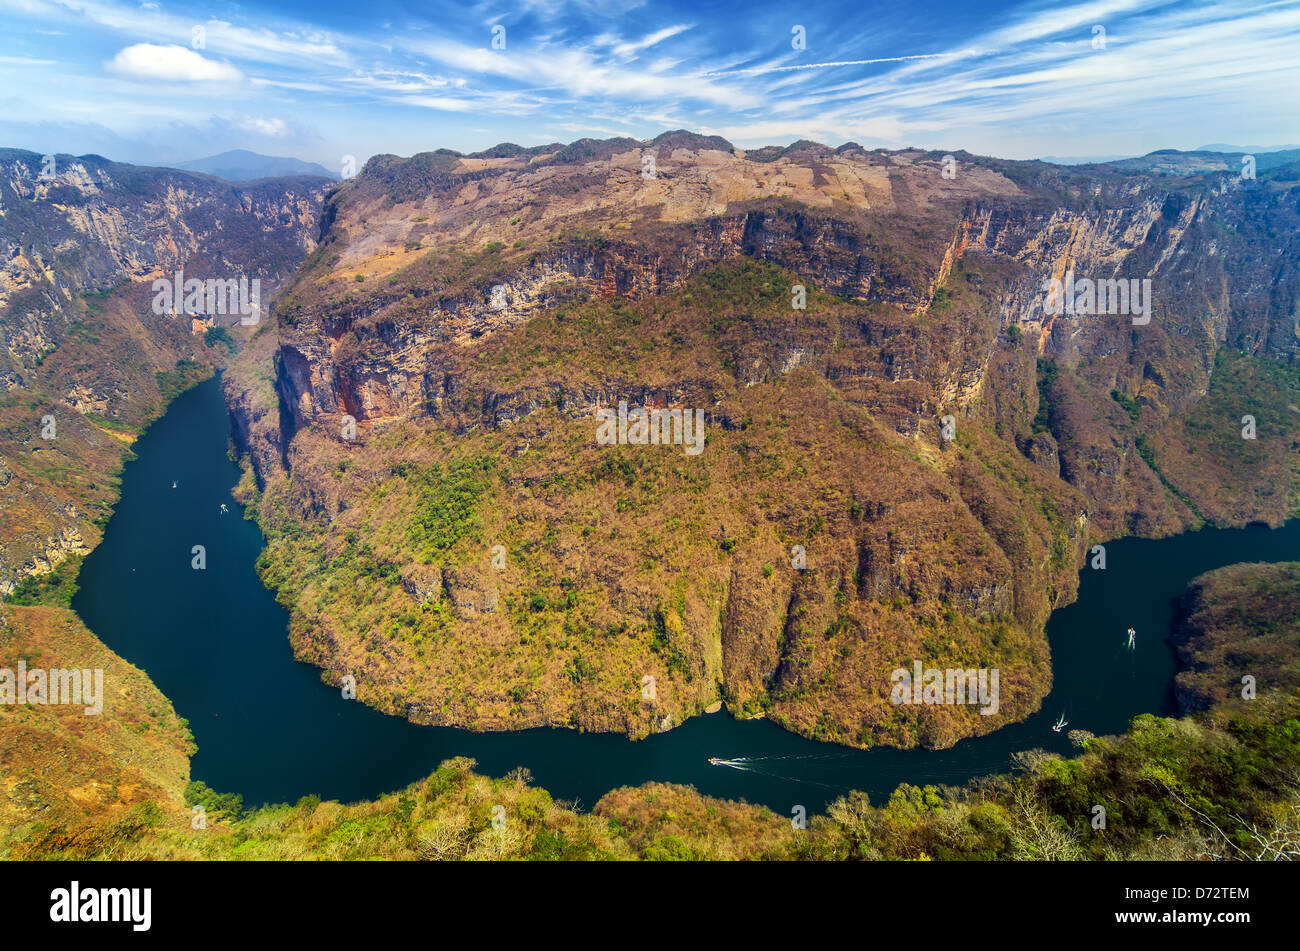 View from above the Sumidero Canyon in Chiapas, Mexico - Stock Image